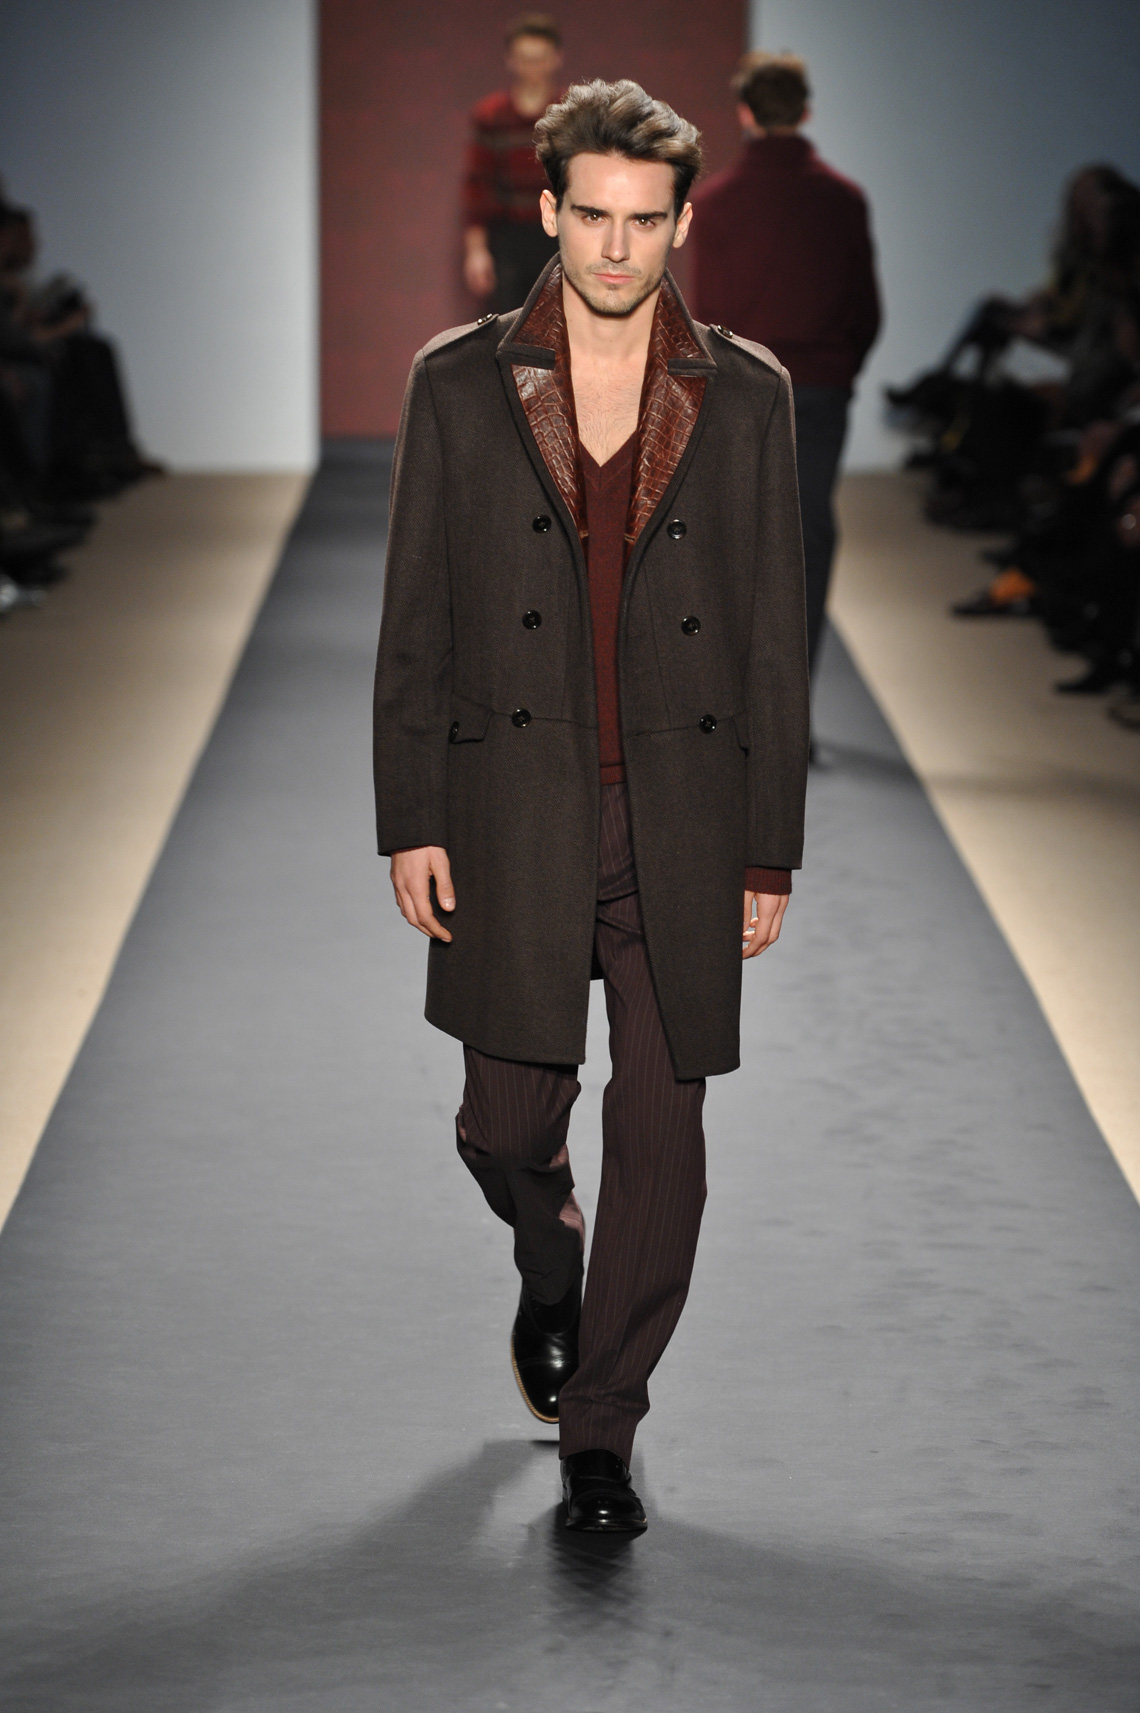 Perry Ellis FW2010 Collection